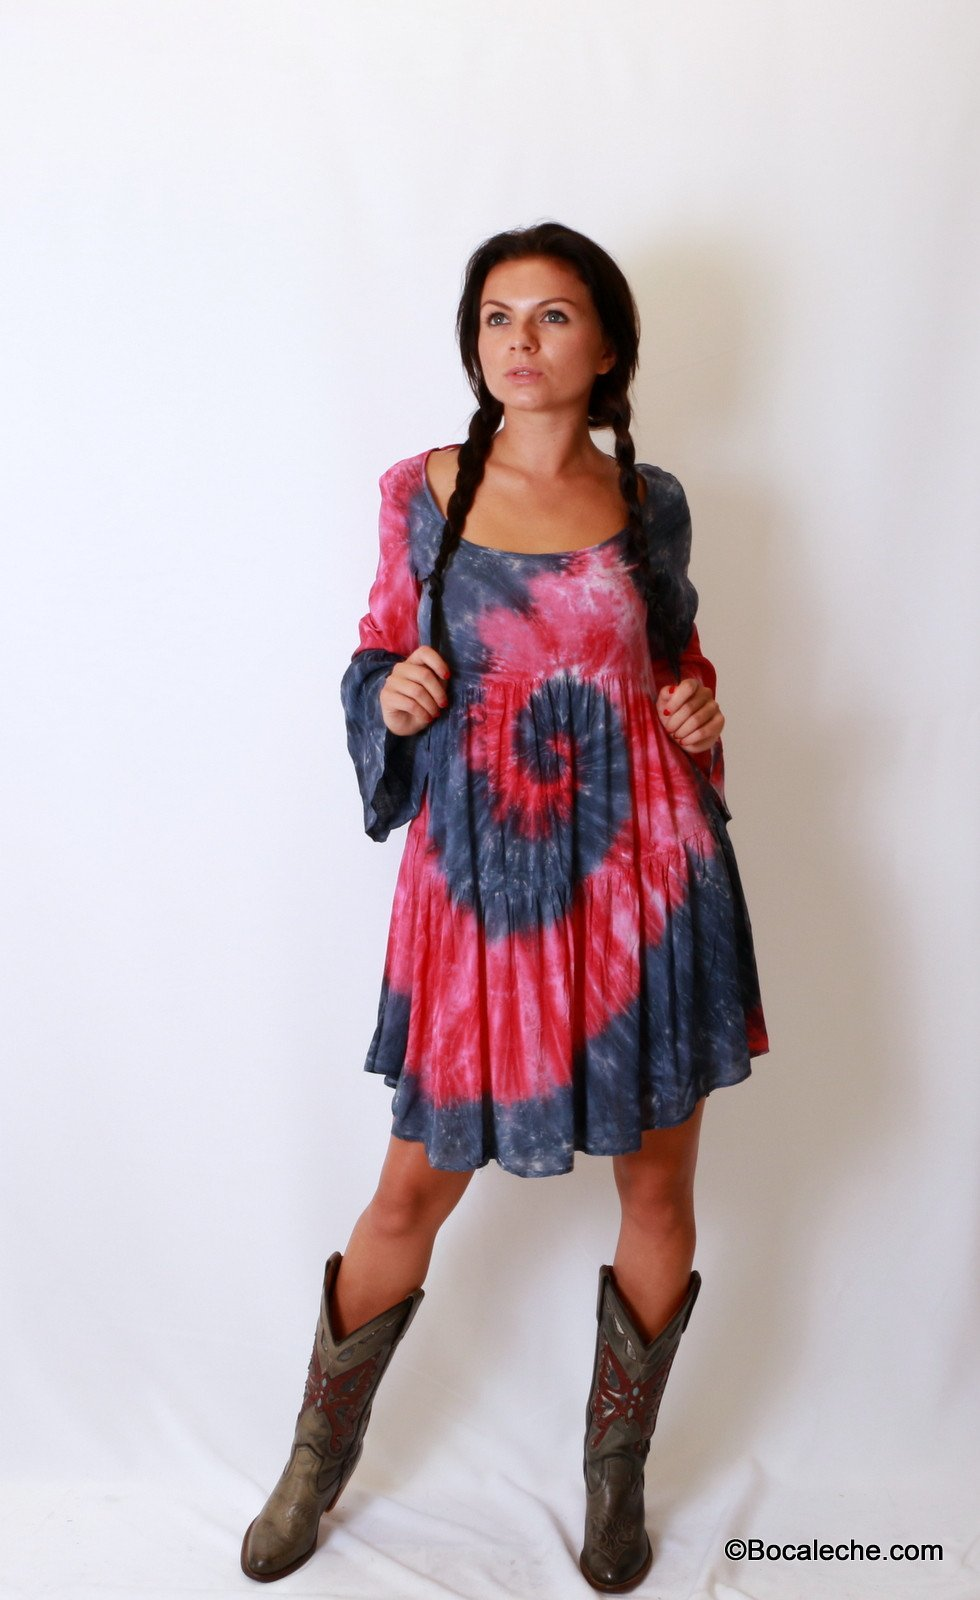 Splattered Tye-Dye Dress - BOCALECHE - 1